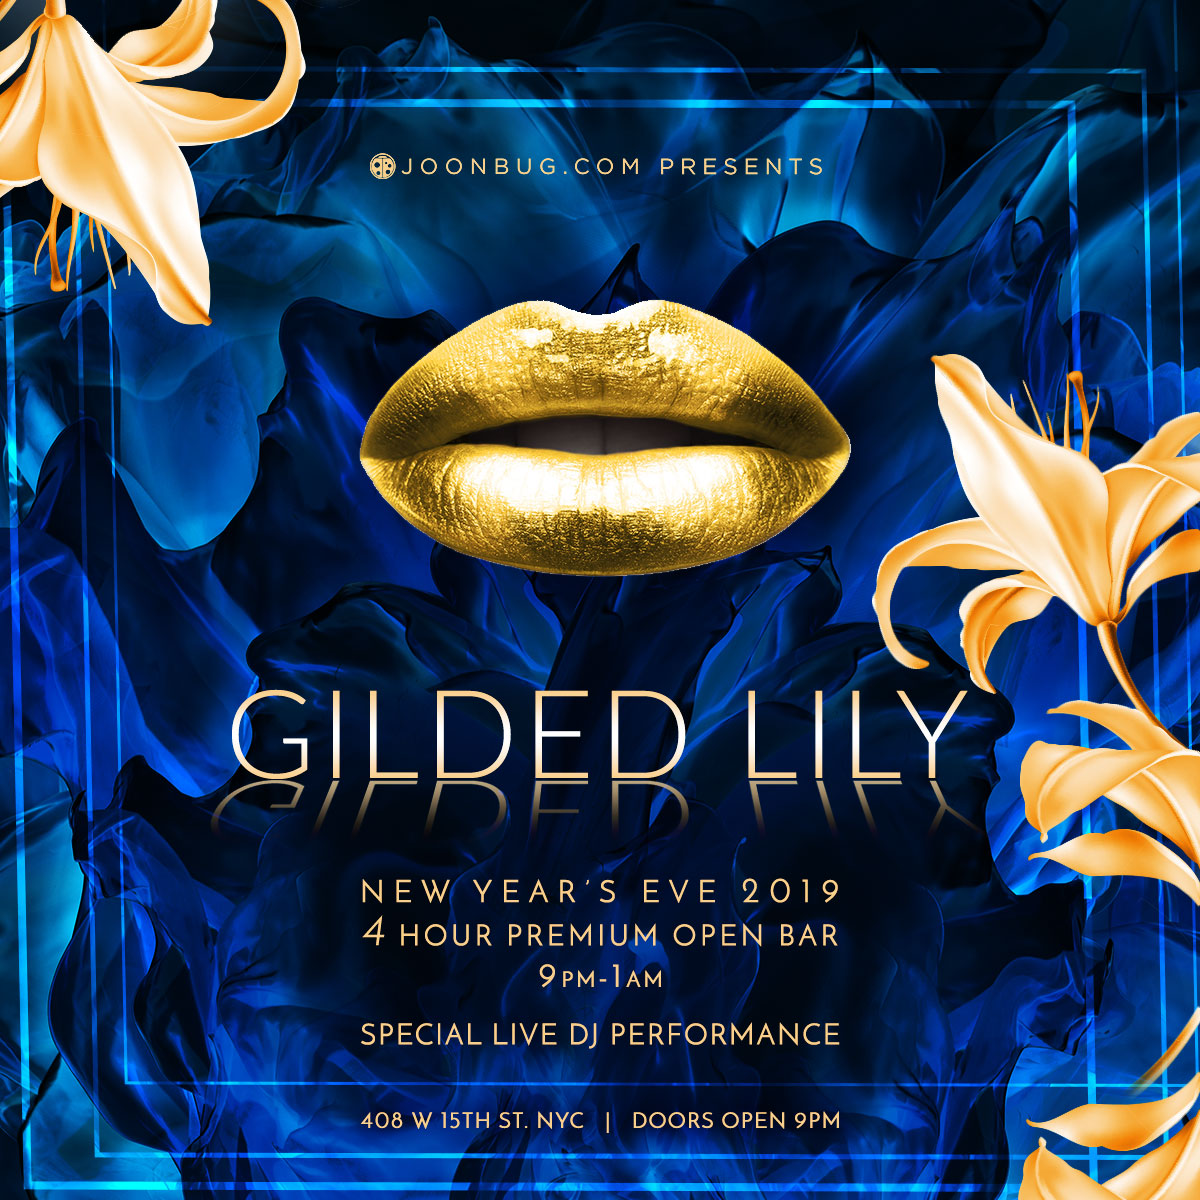 New York Gilded Lily Vip Nye Party Buy Tickets Now